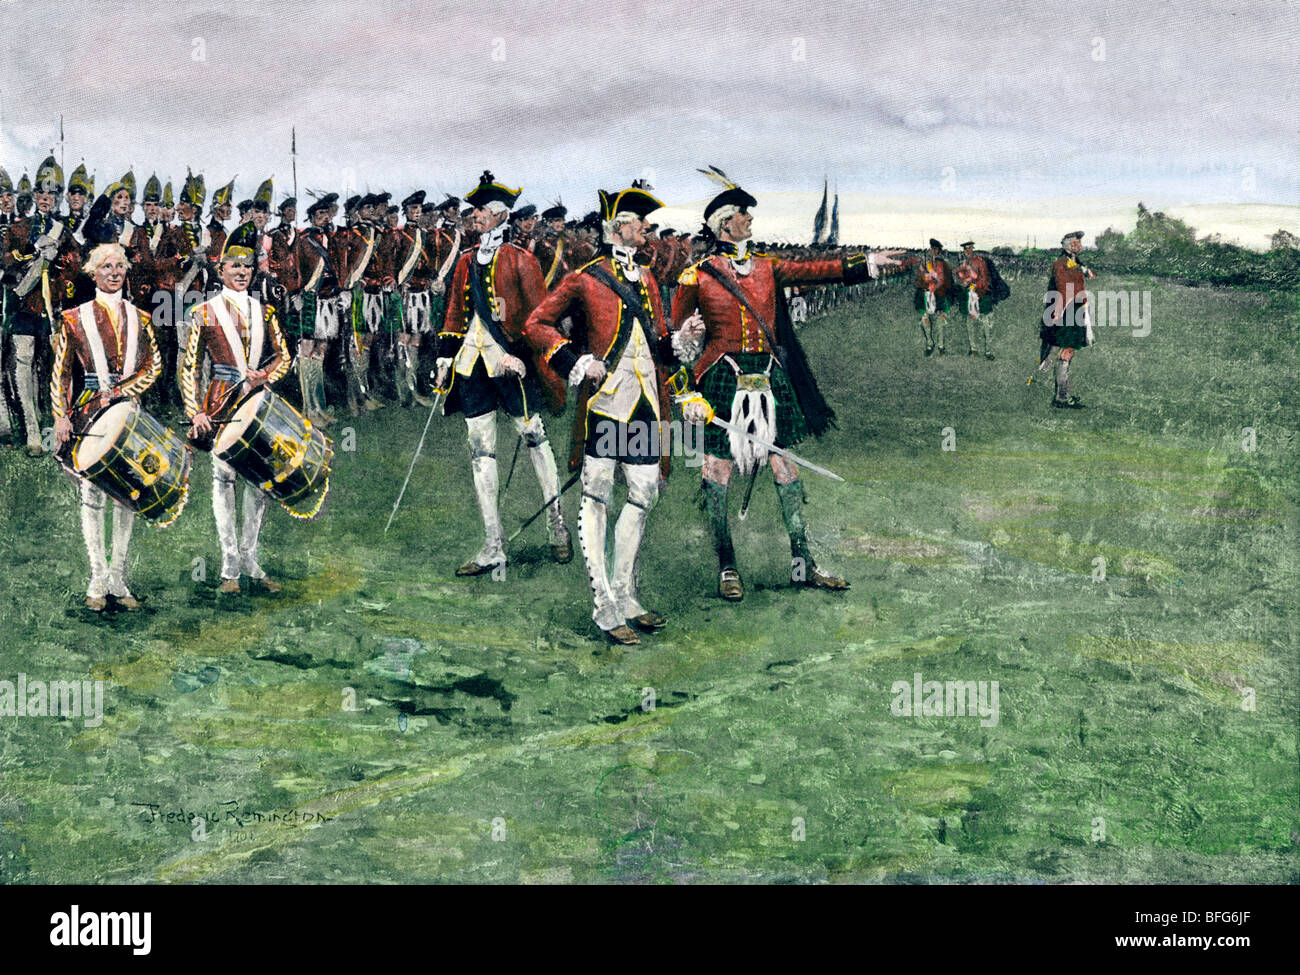 General Wolfe assembling the British army on the Plains of Abraham to take Quebec, 1759. Hand-colored halftone of - Stock Image